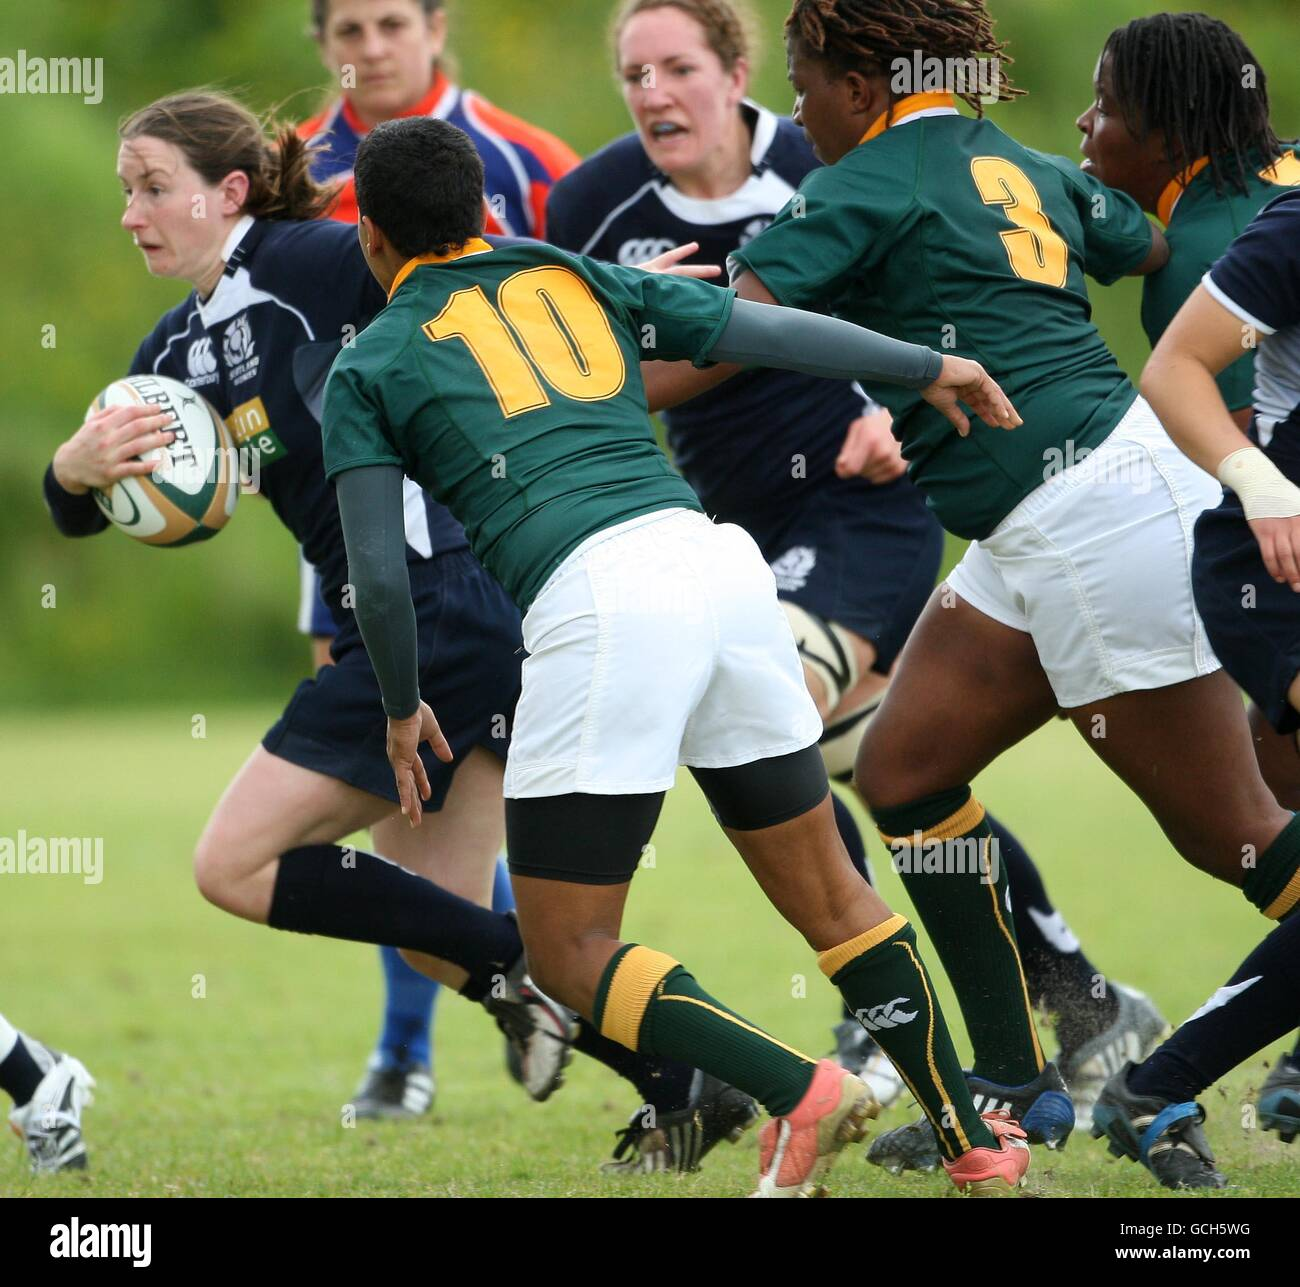 Old Deer Park Rugby Club: Lucy Millard Stock Photos & Lucy Millard Stock Images